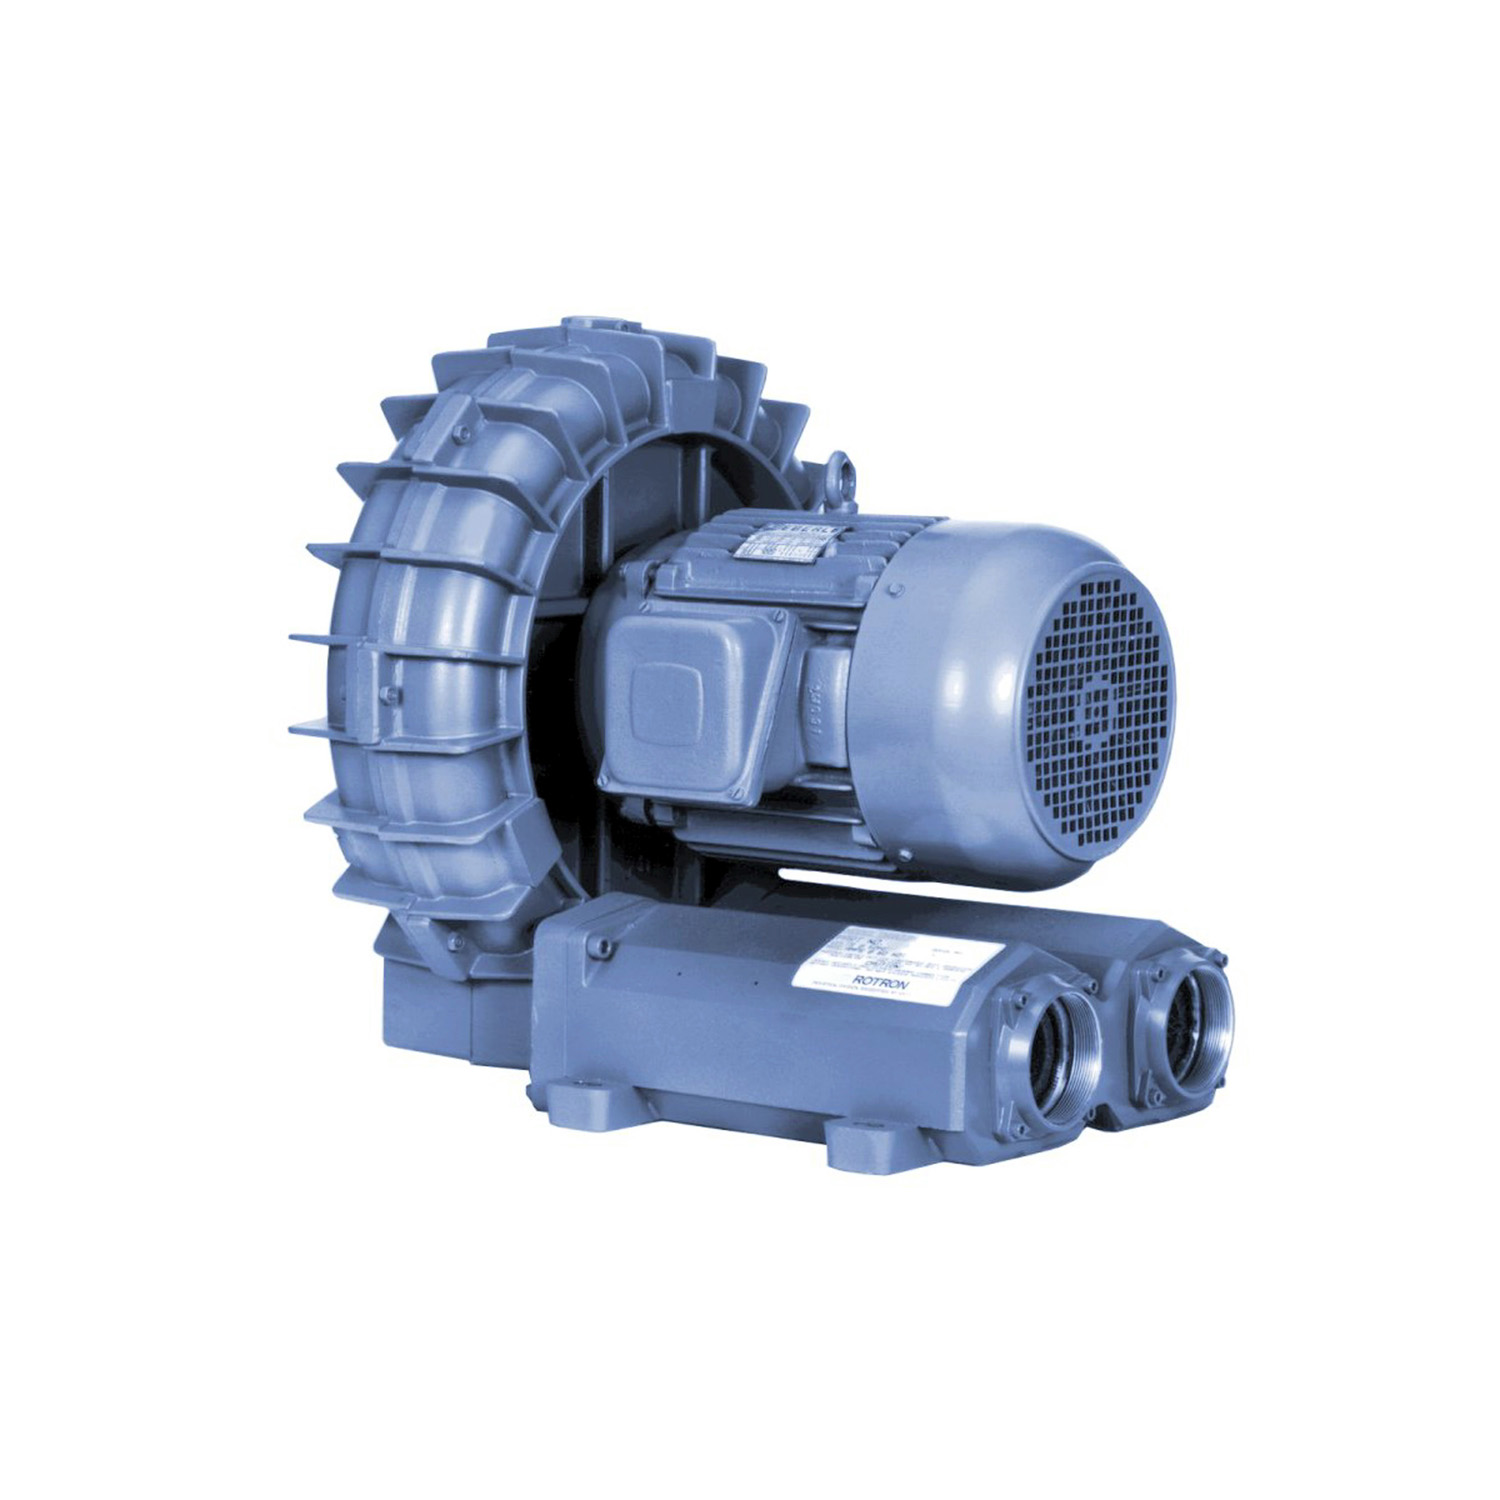 Blower Fan Parts : Centrifugal fans with filters free engine